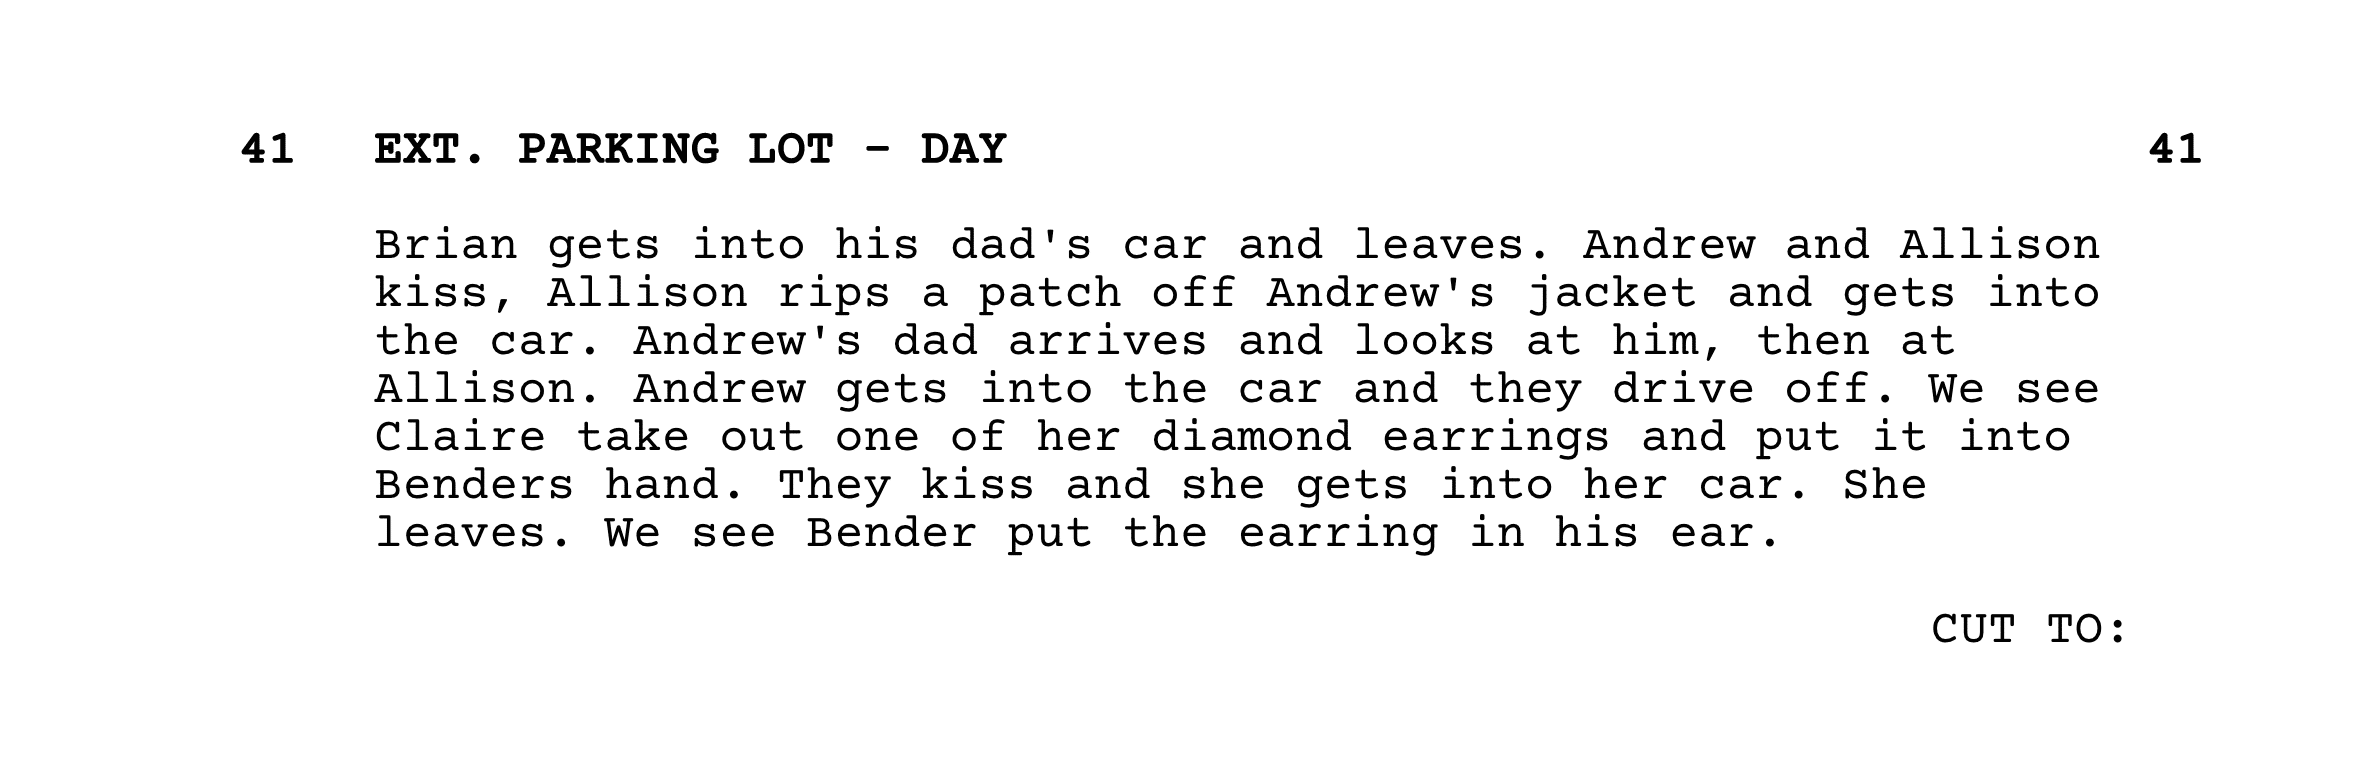 The Breakfast Club Script Screenplay - Ending - StudioBinder